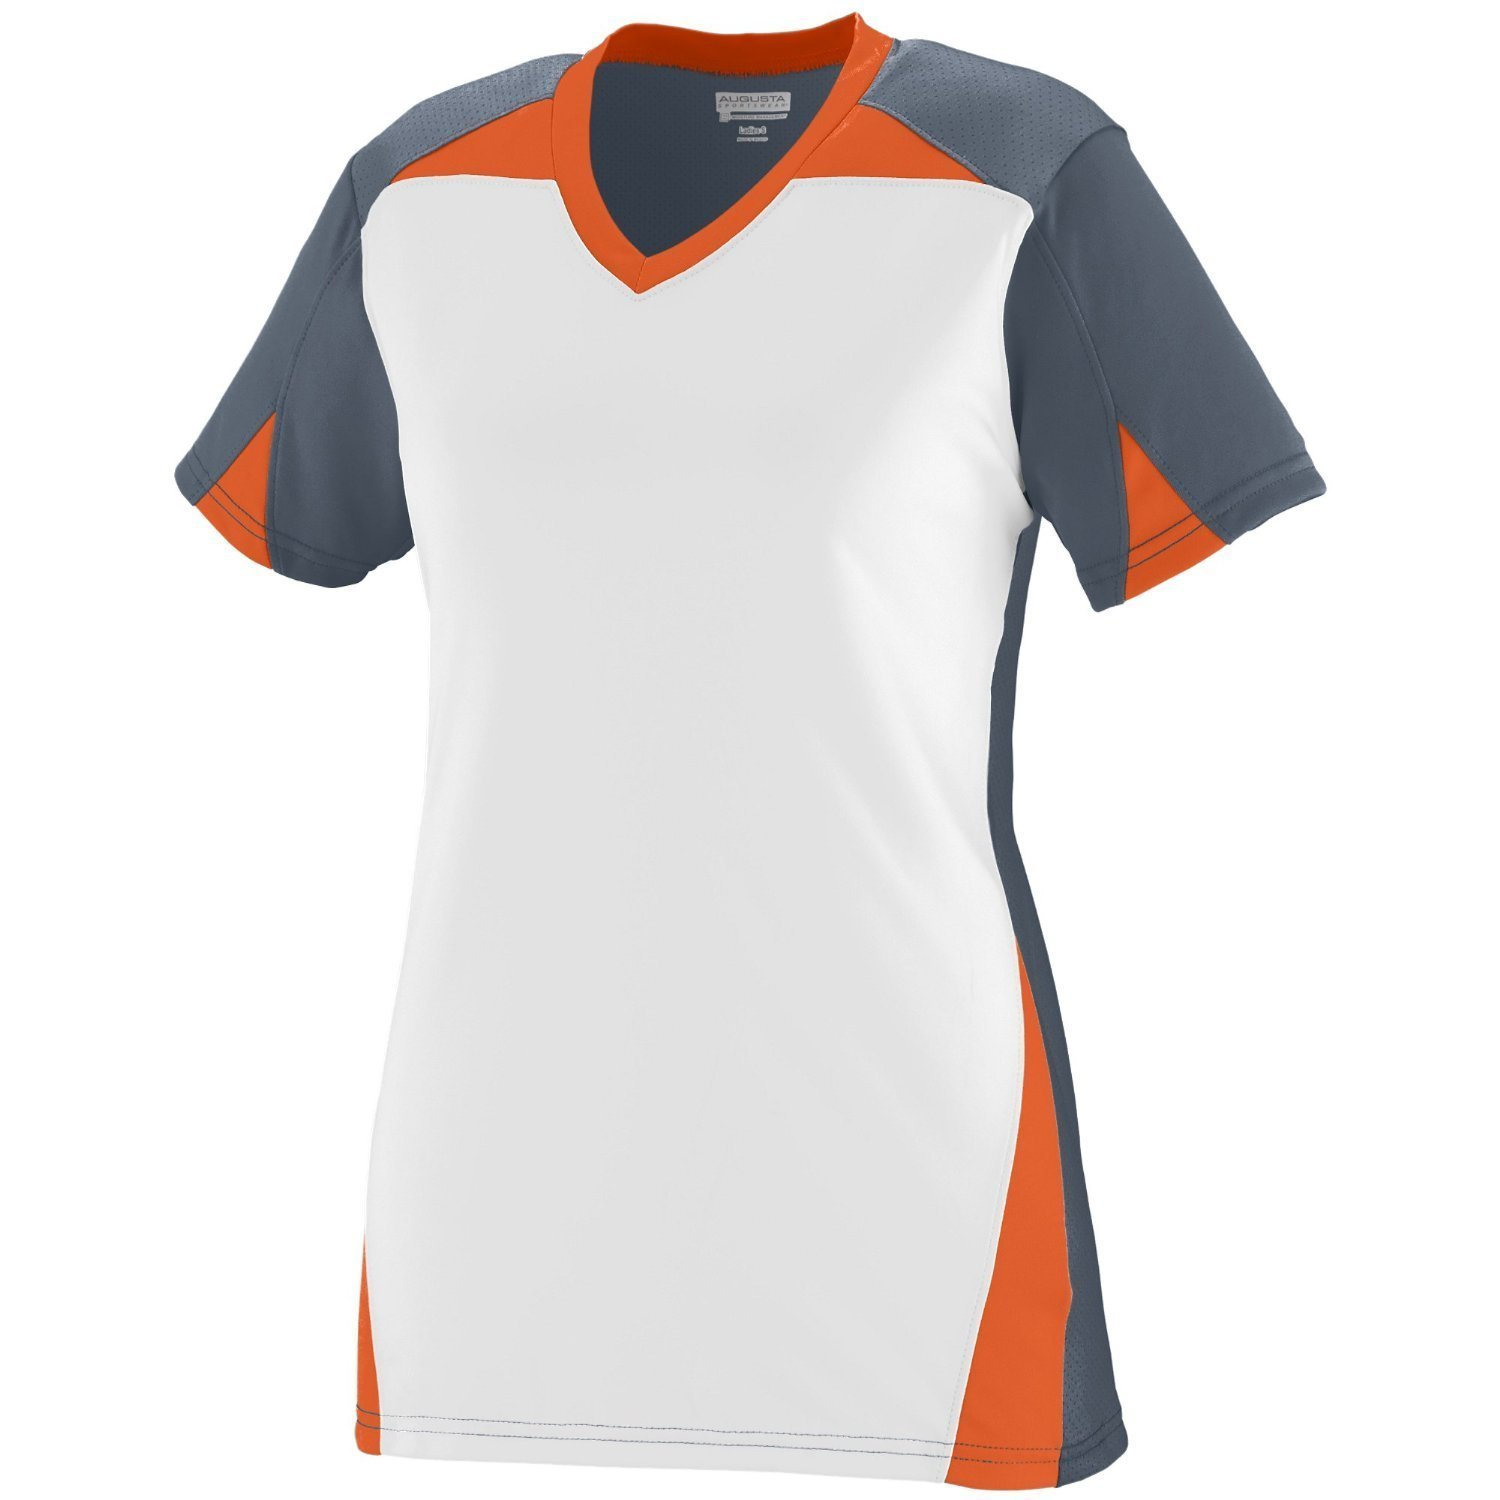 Augusta Sportswear Girls 'マトリックスJersey B00P540P4M Medium|Graphite/White/Orange Graphite/White/Orange Medium